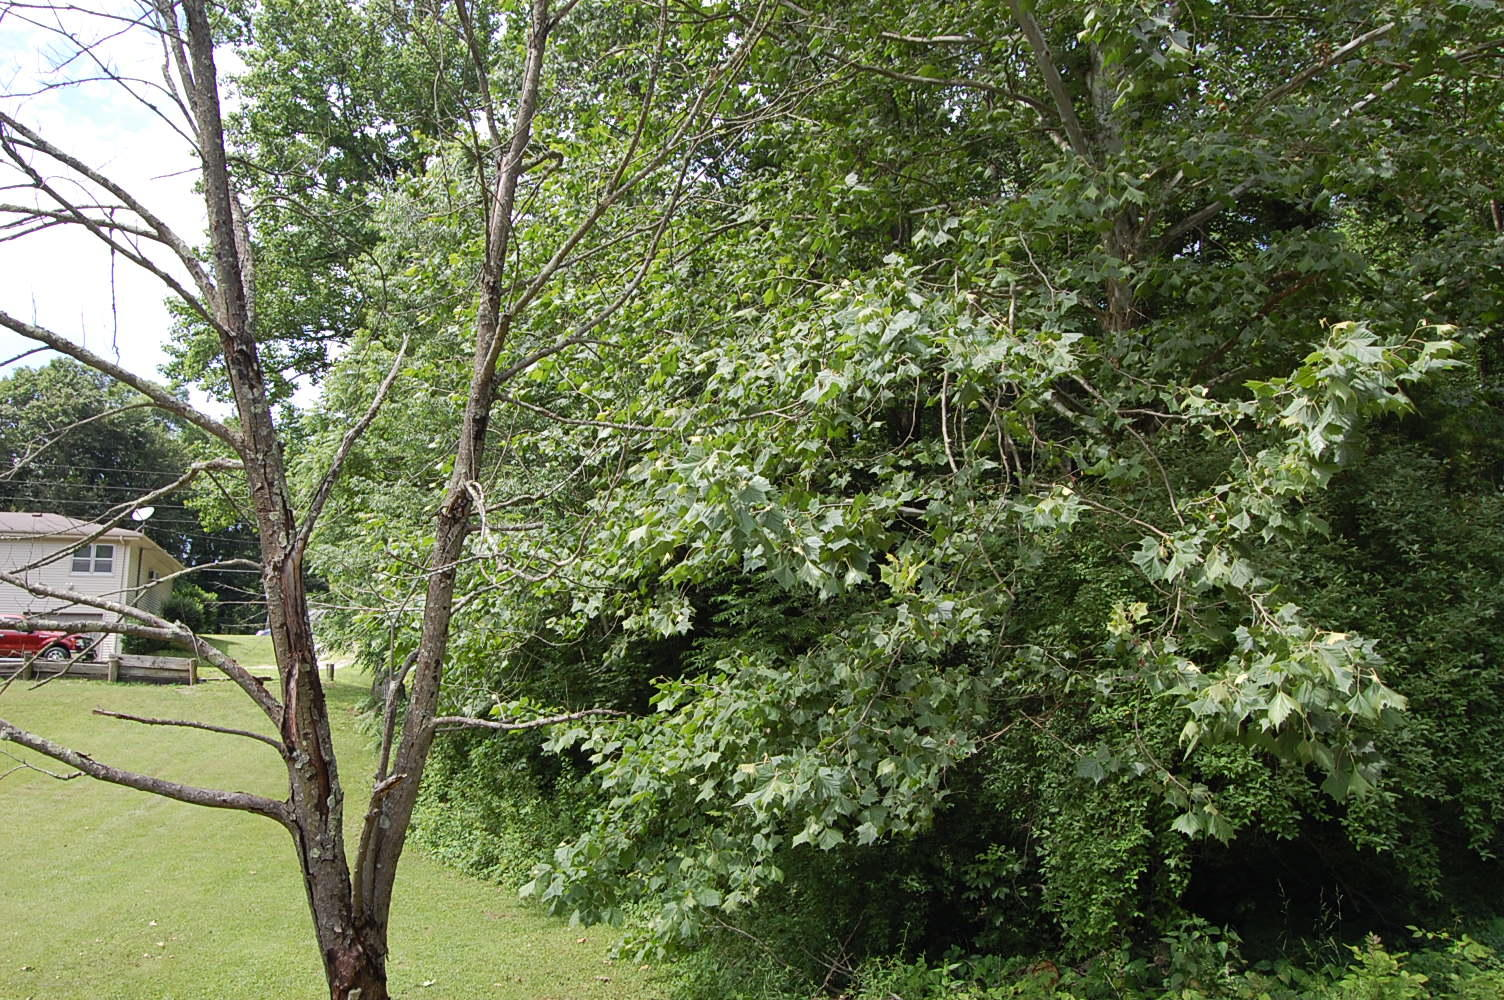 One Acre Property in Picturesque Vernon Indiana - Image 0